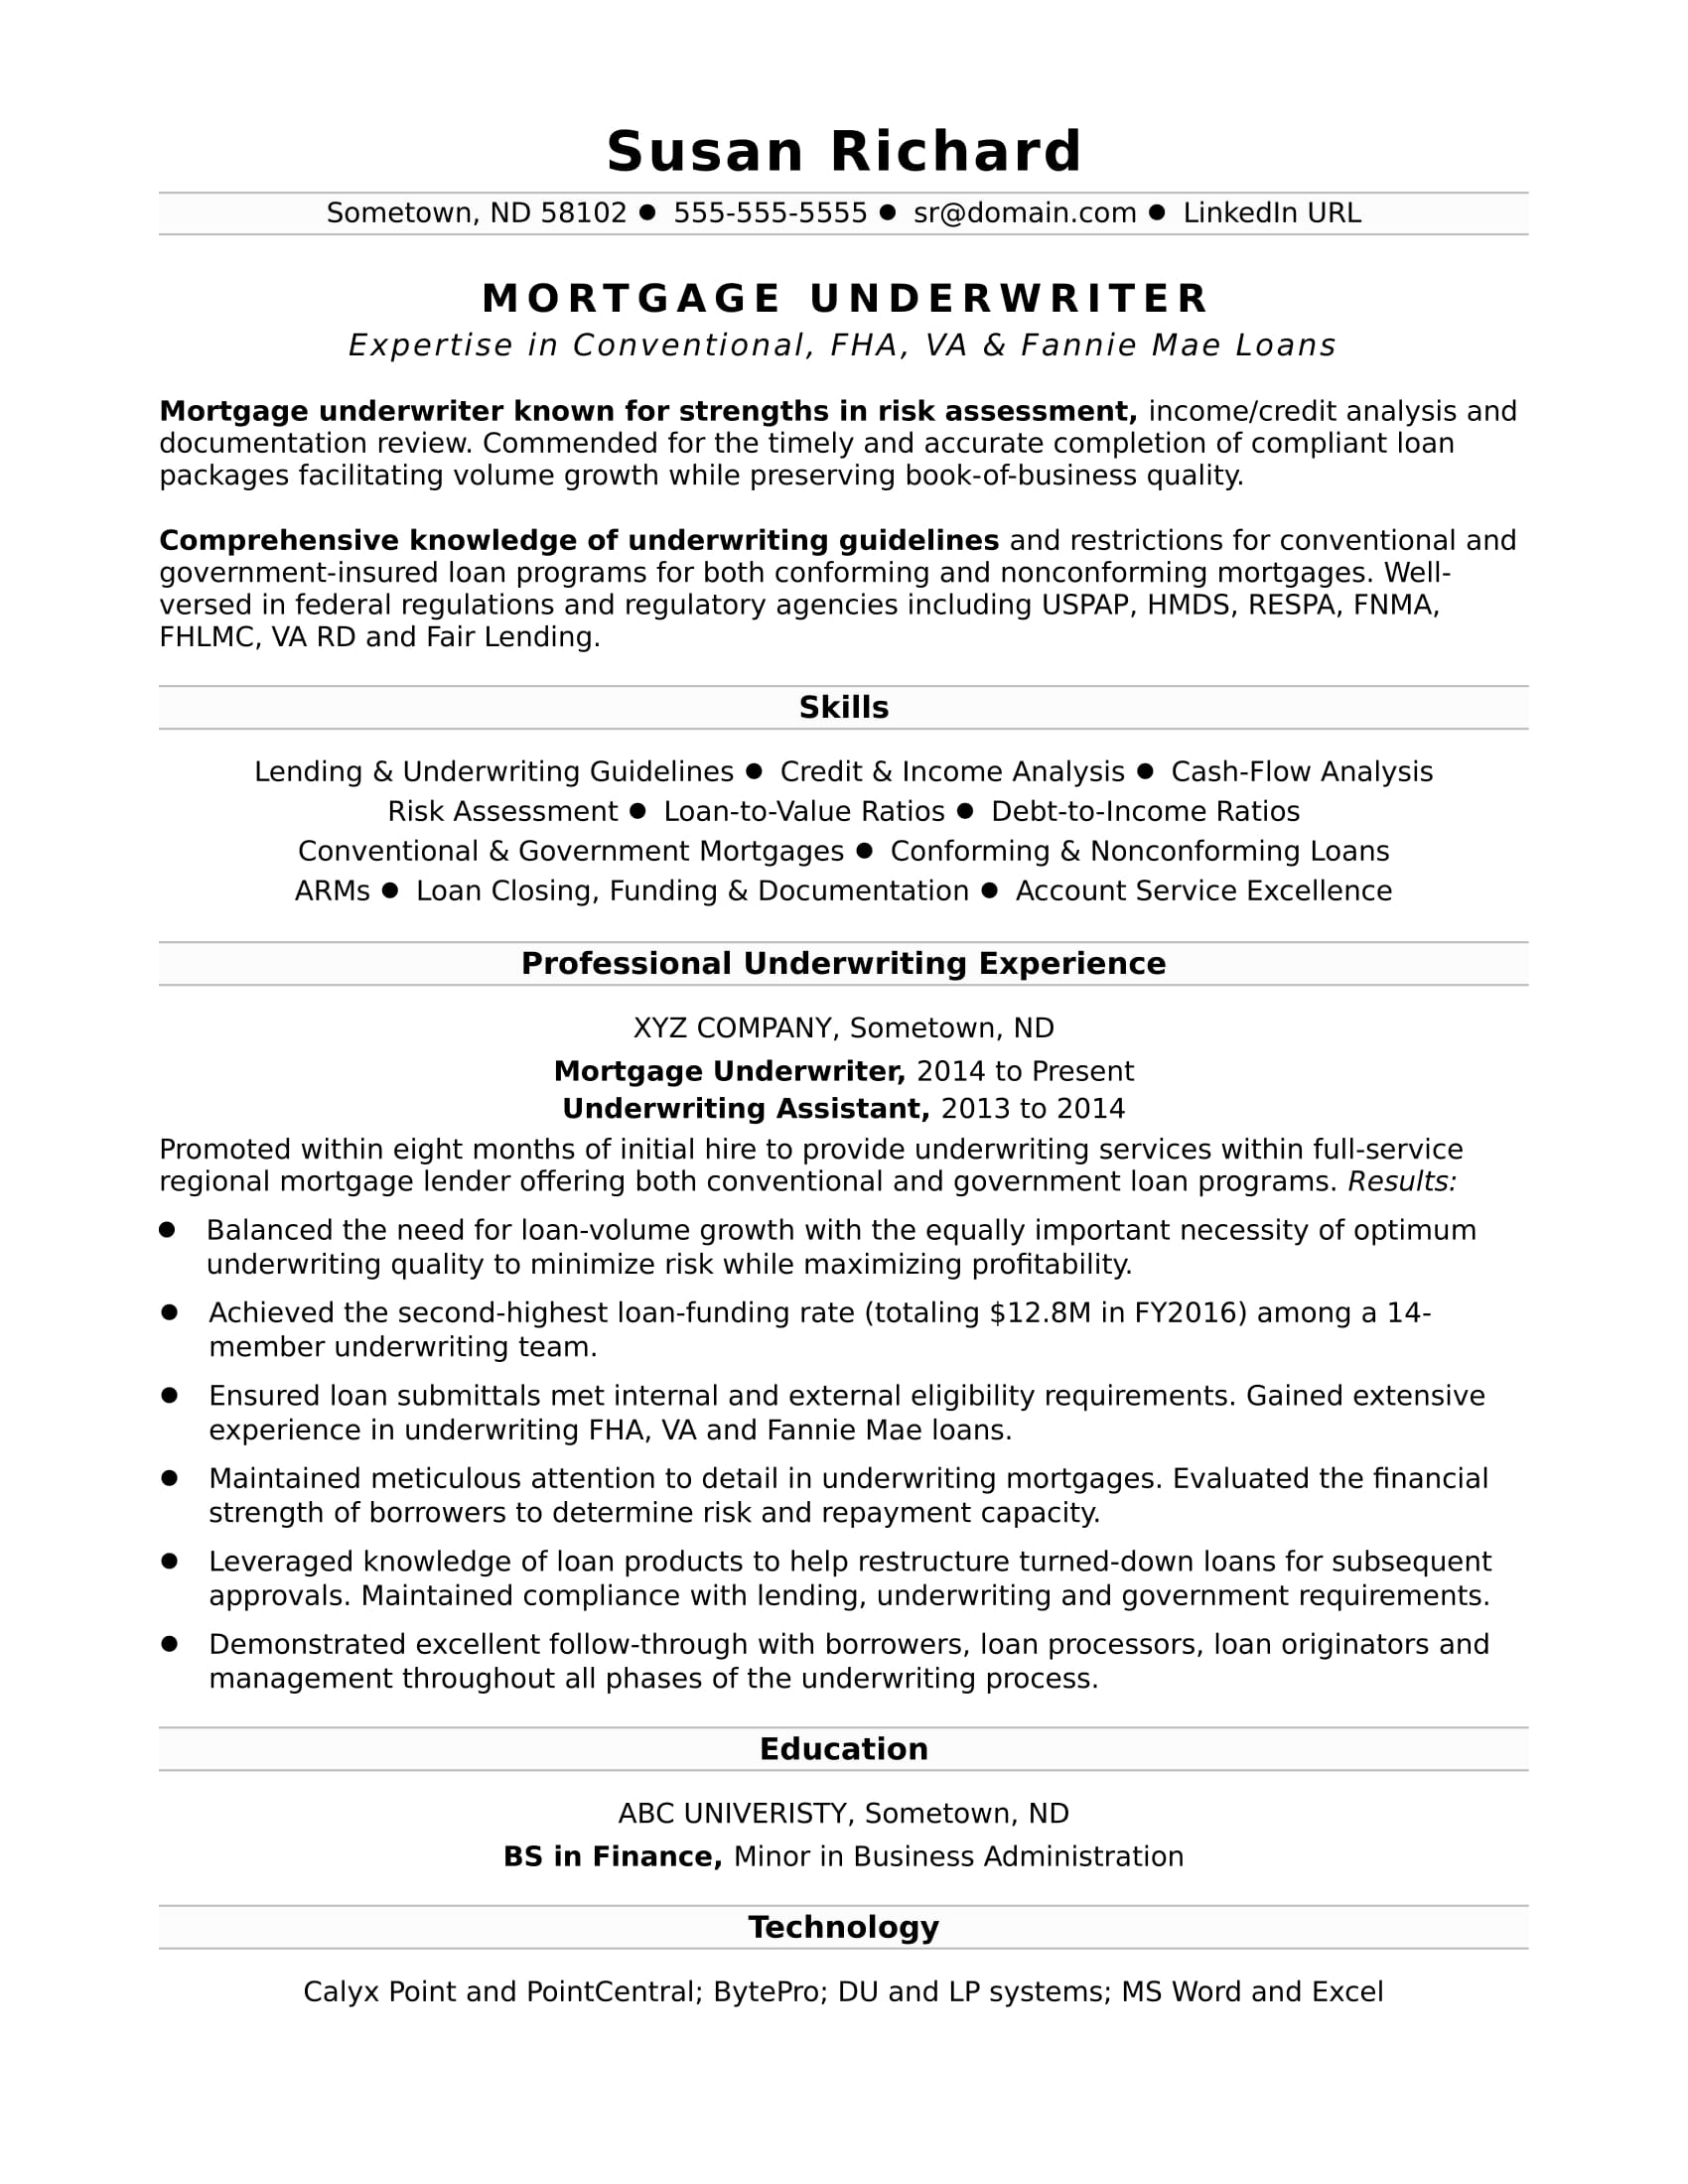 Underwriting Resume Resume Ideas